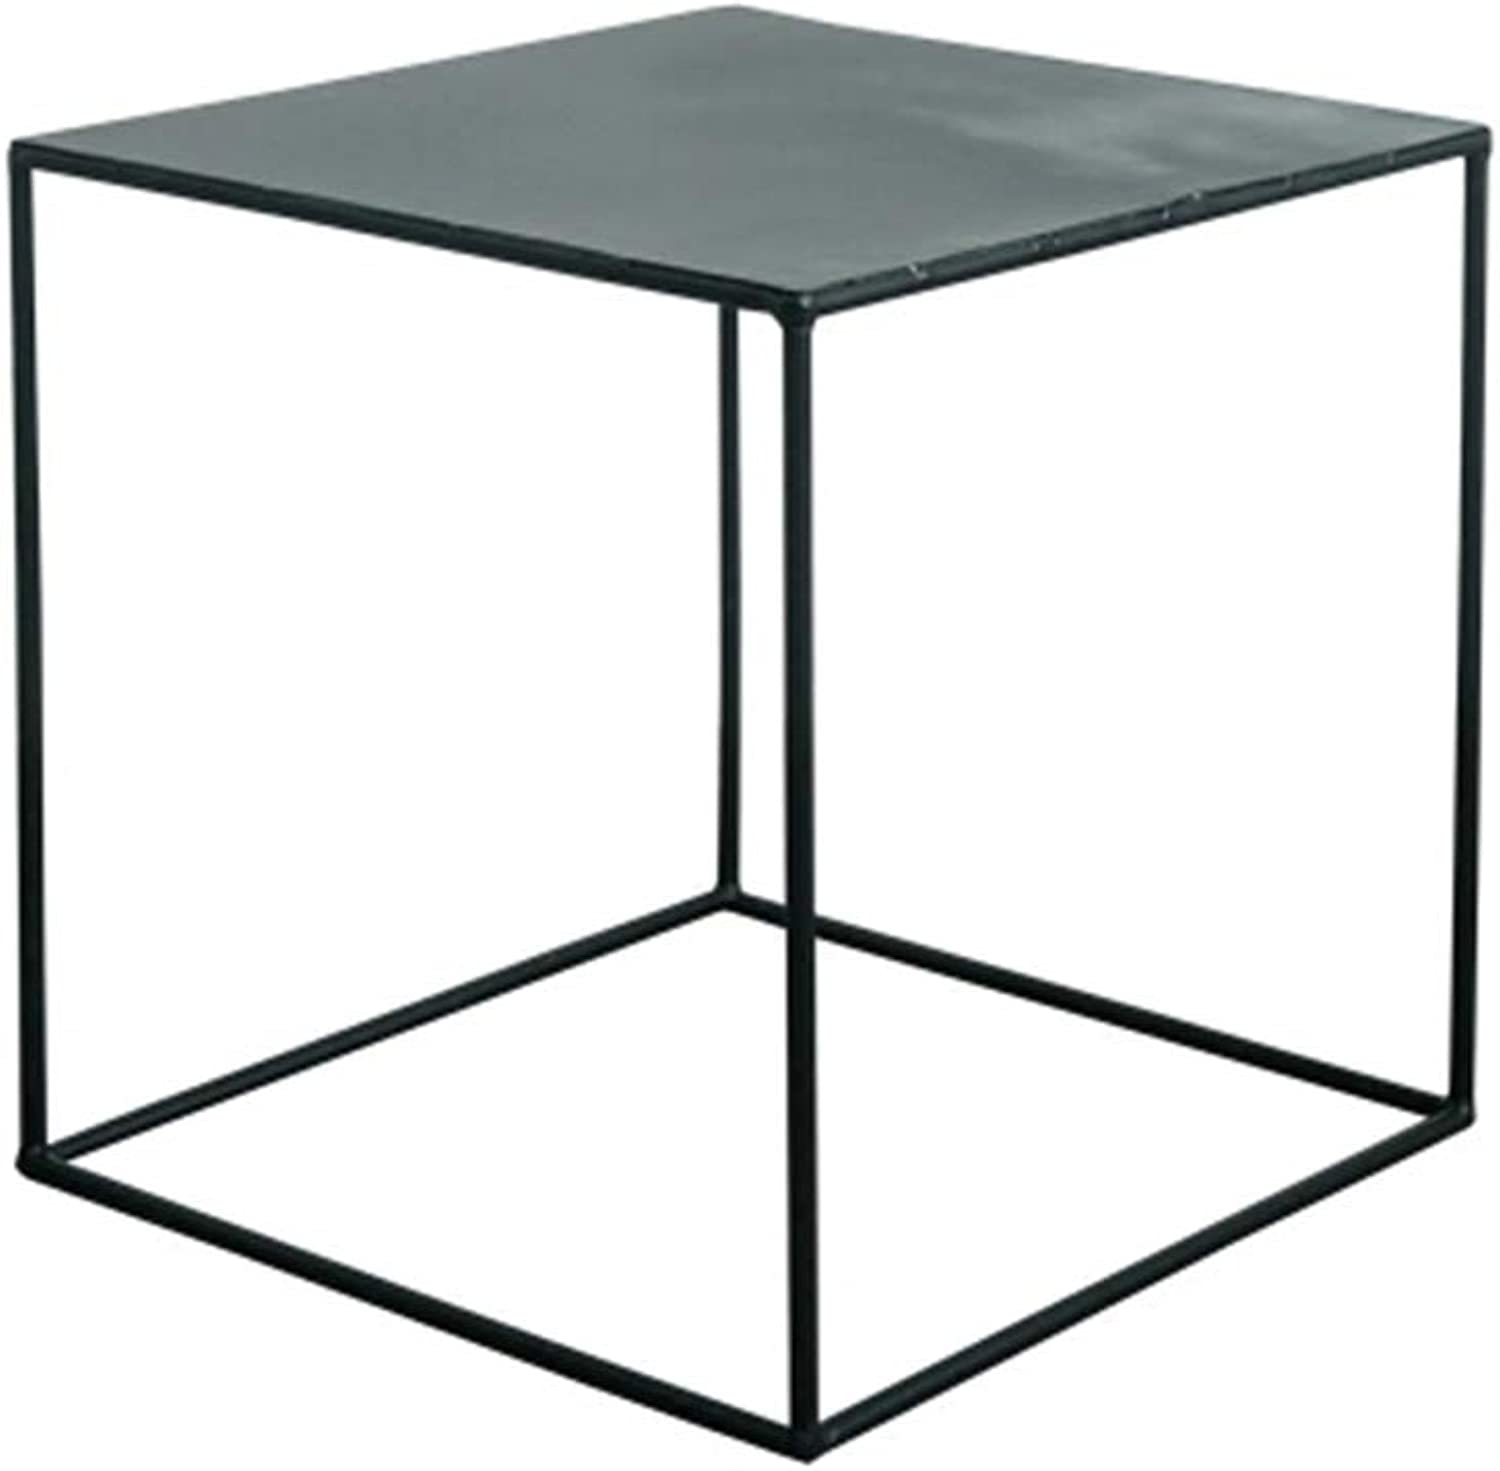 Coffee Table Simple Modern Square Small Side Table Living Room Outdoor Corner Indoor Practical Metal Frame Tea Table